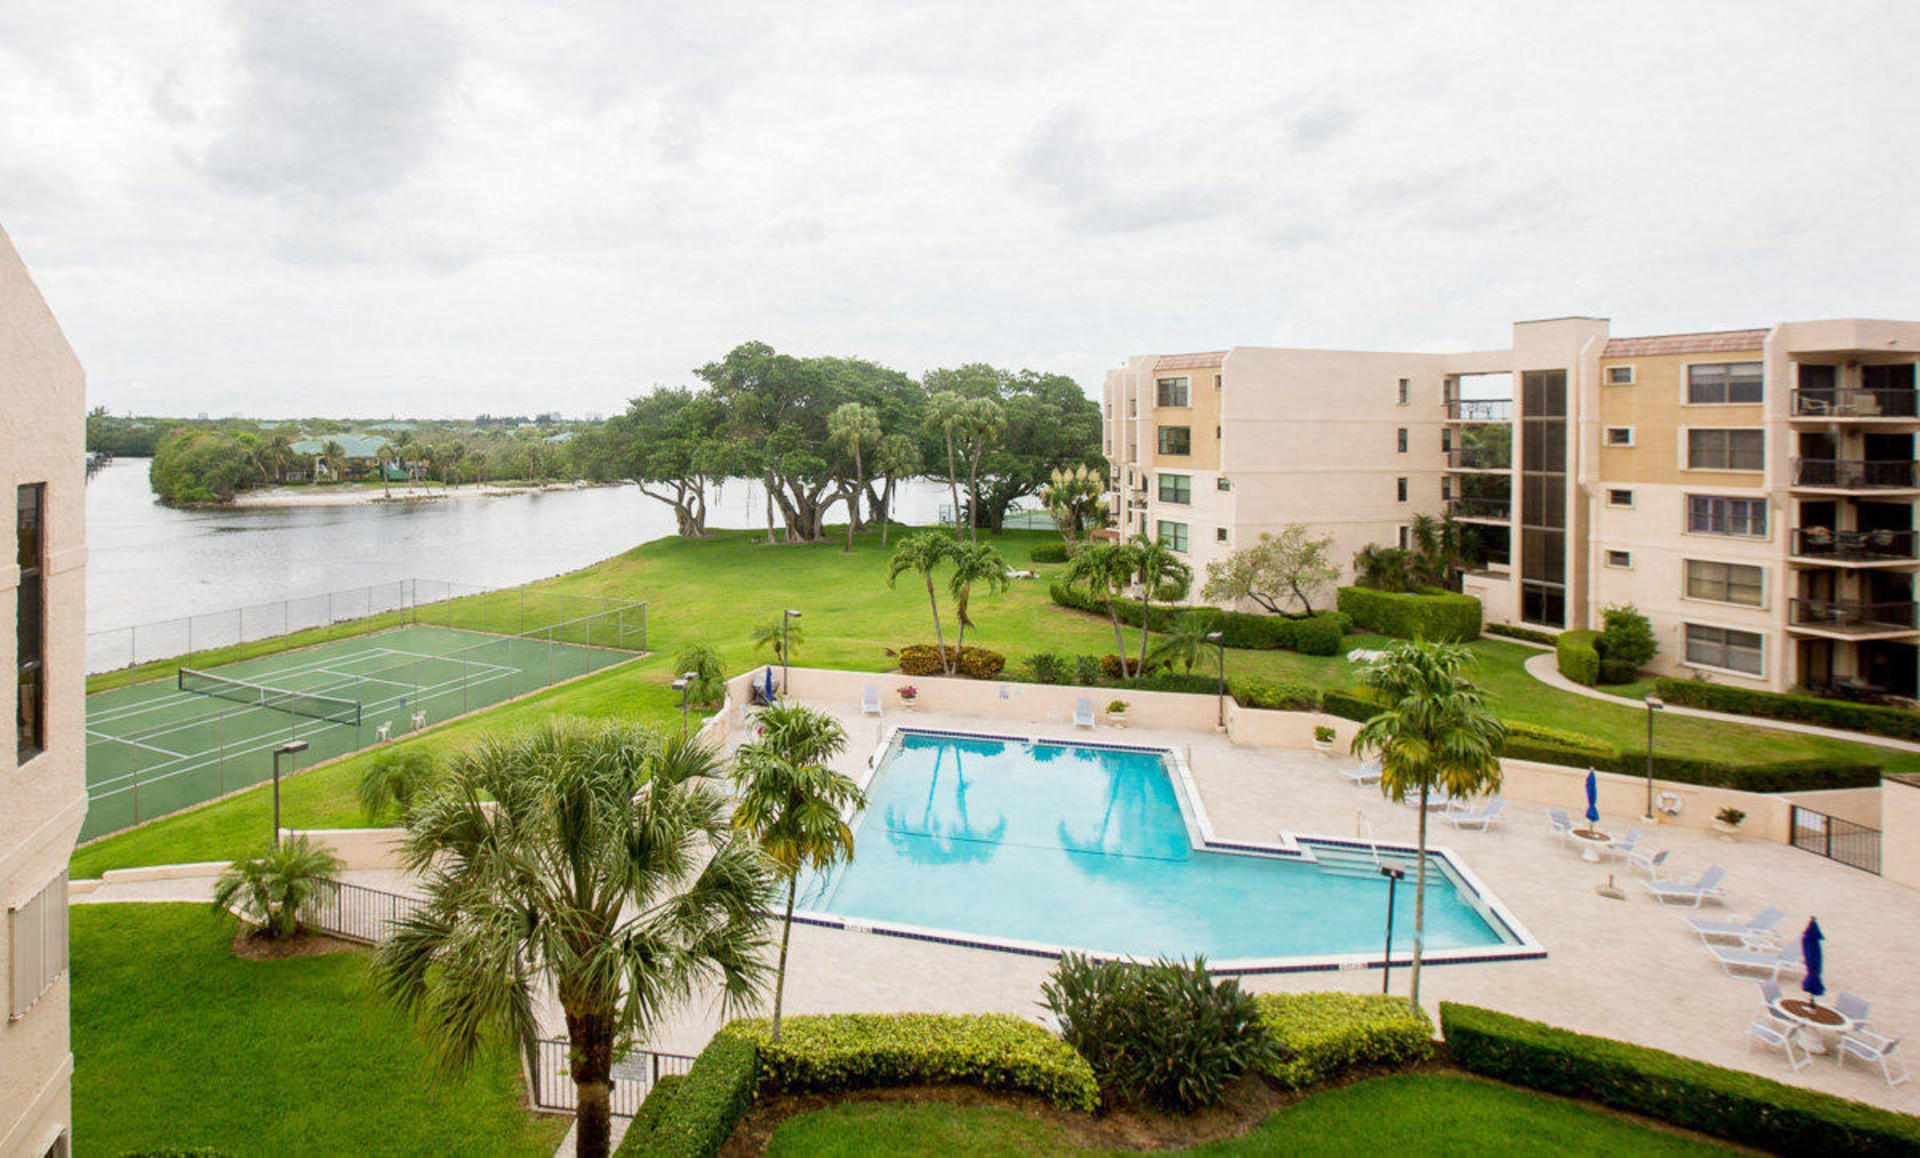 Pga Boulevard Golfview Rd, North Palm Beach, FL 33408 - Estimate and ...